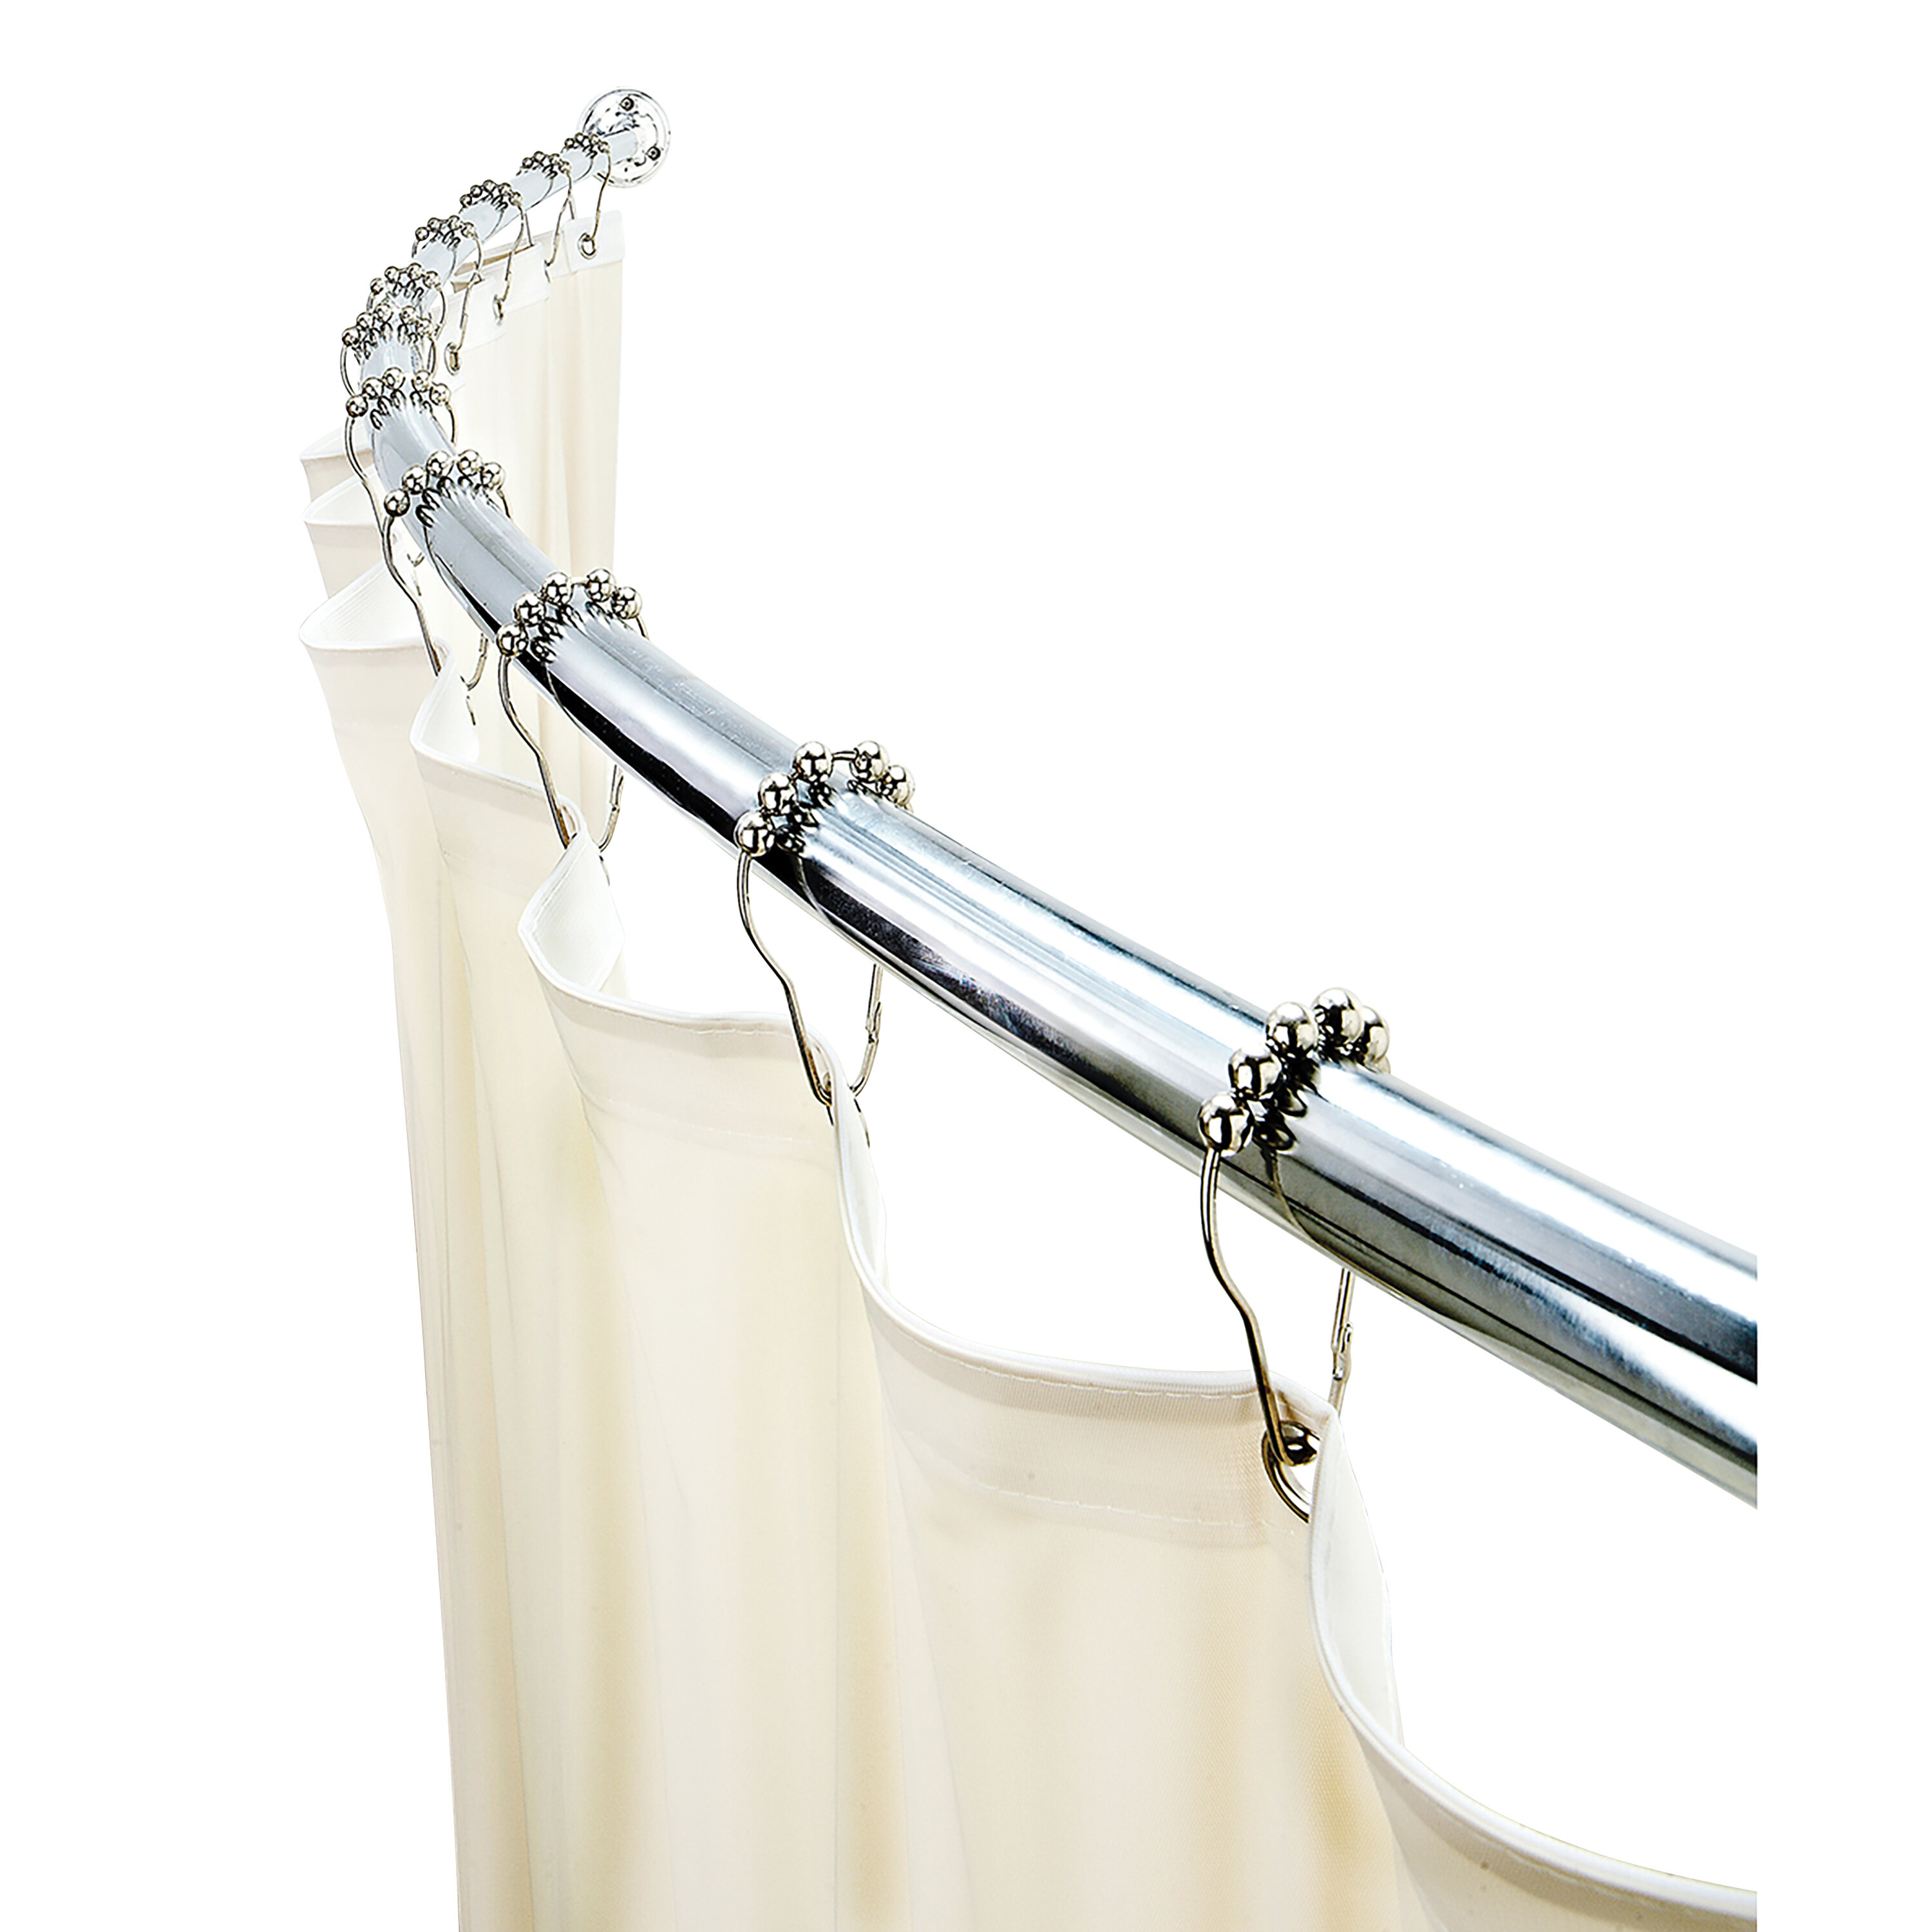 72 Adjustable Curved Fixed Shower Curtain Rod